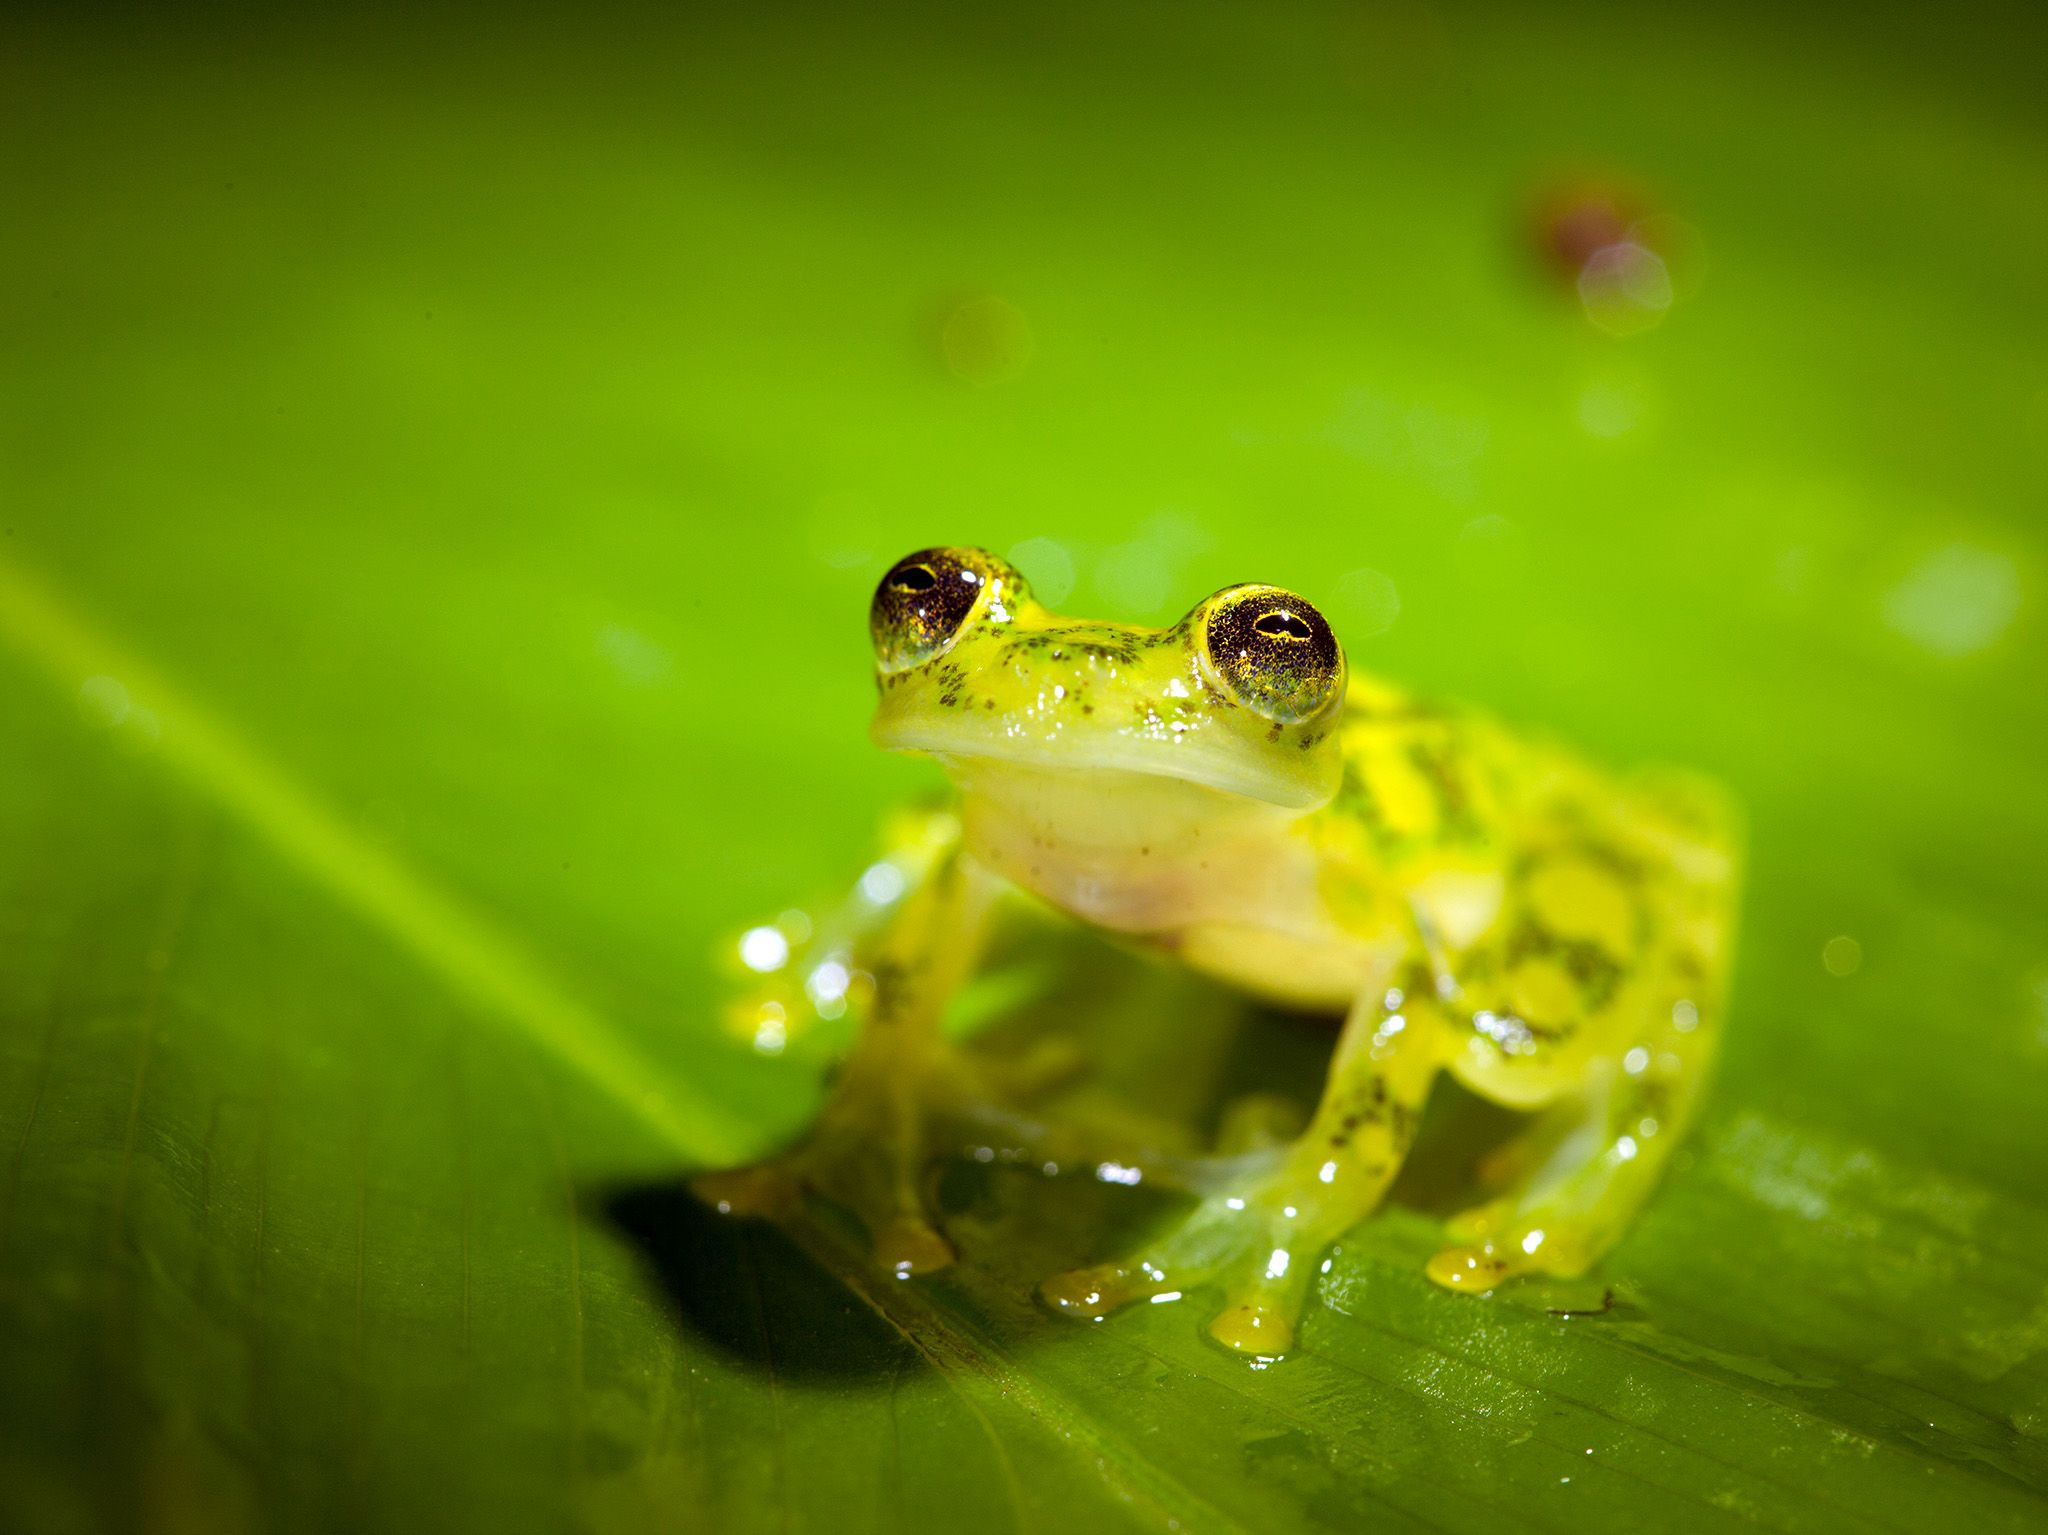 Costa Rican Amphibian Research Center.   Siquirres, Costa Rica: An adult reticulated glass frog... [Photo of the day - October 2017]